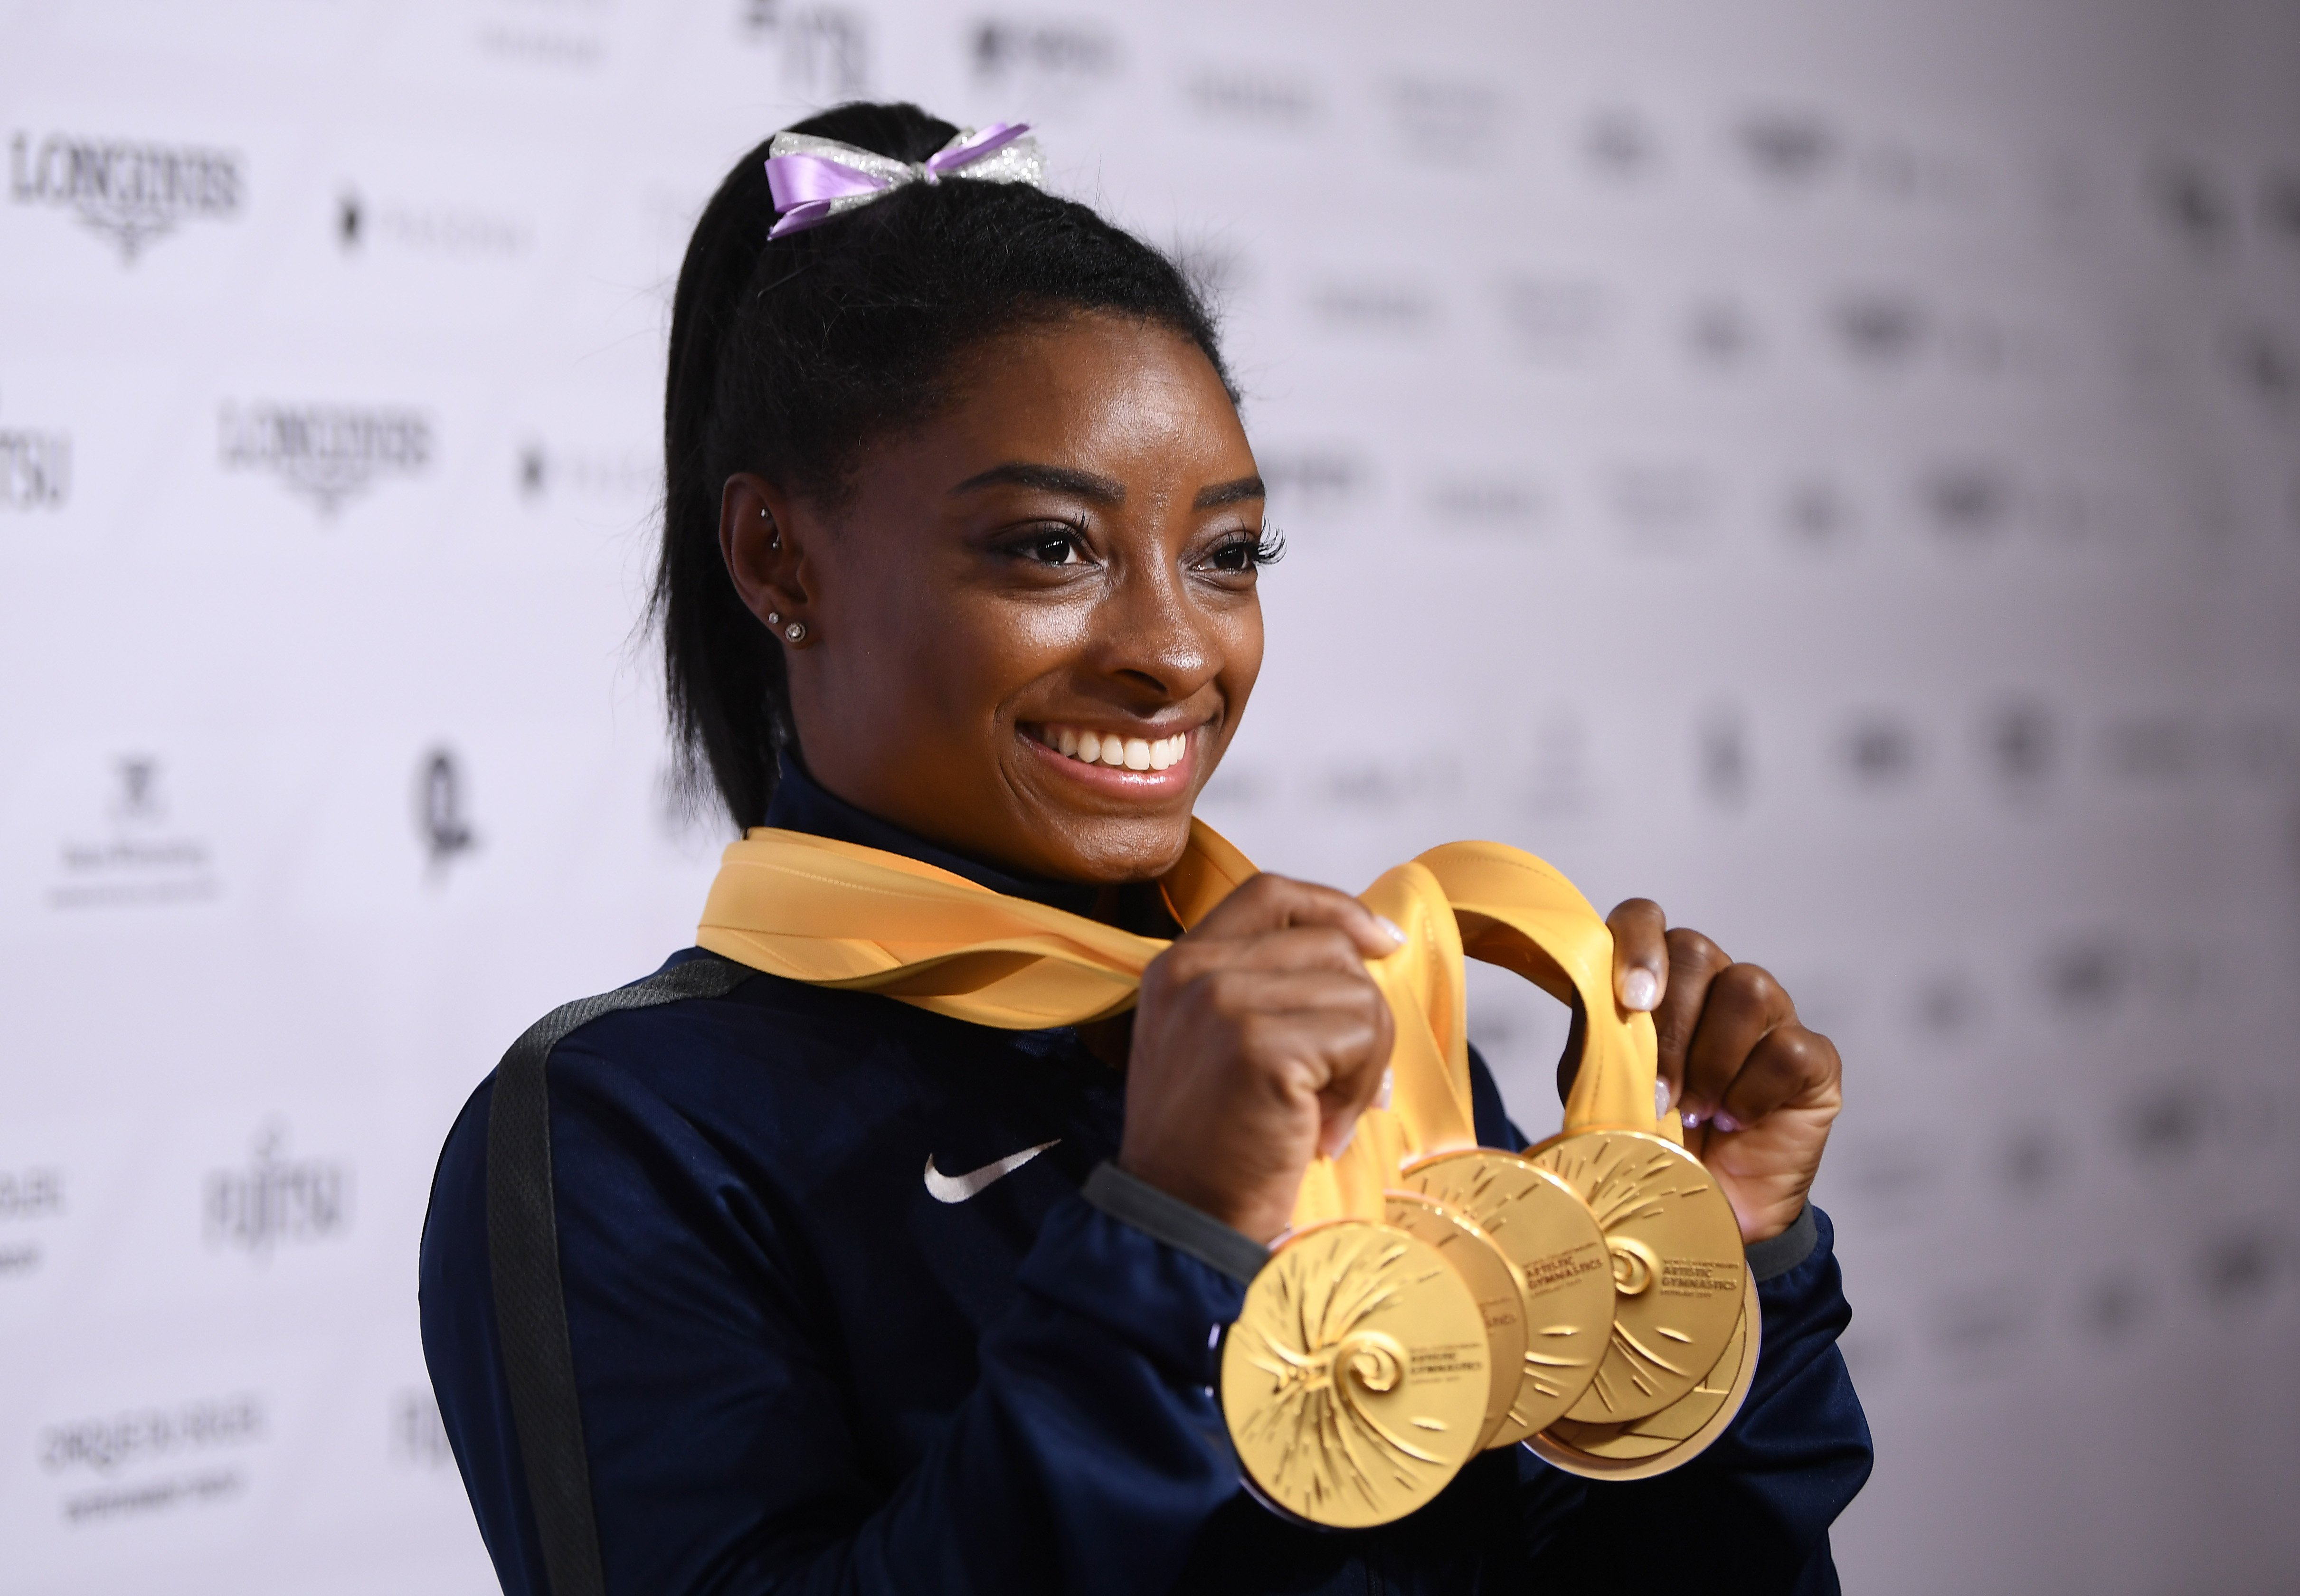 Simone Biles holding up her haul at the FIG Artistic Gymnastics World Championships in Stuttgart, Germany on October 13, 2019. | Photo: Getty Images